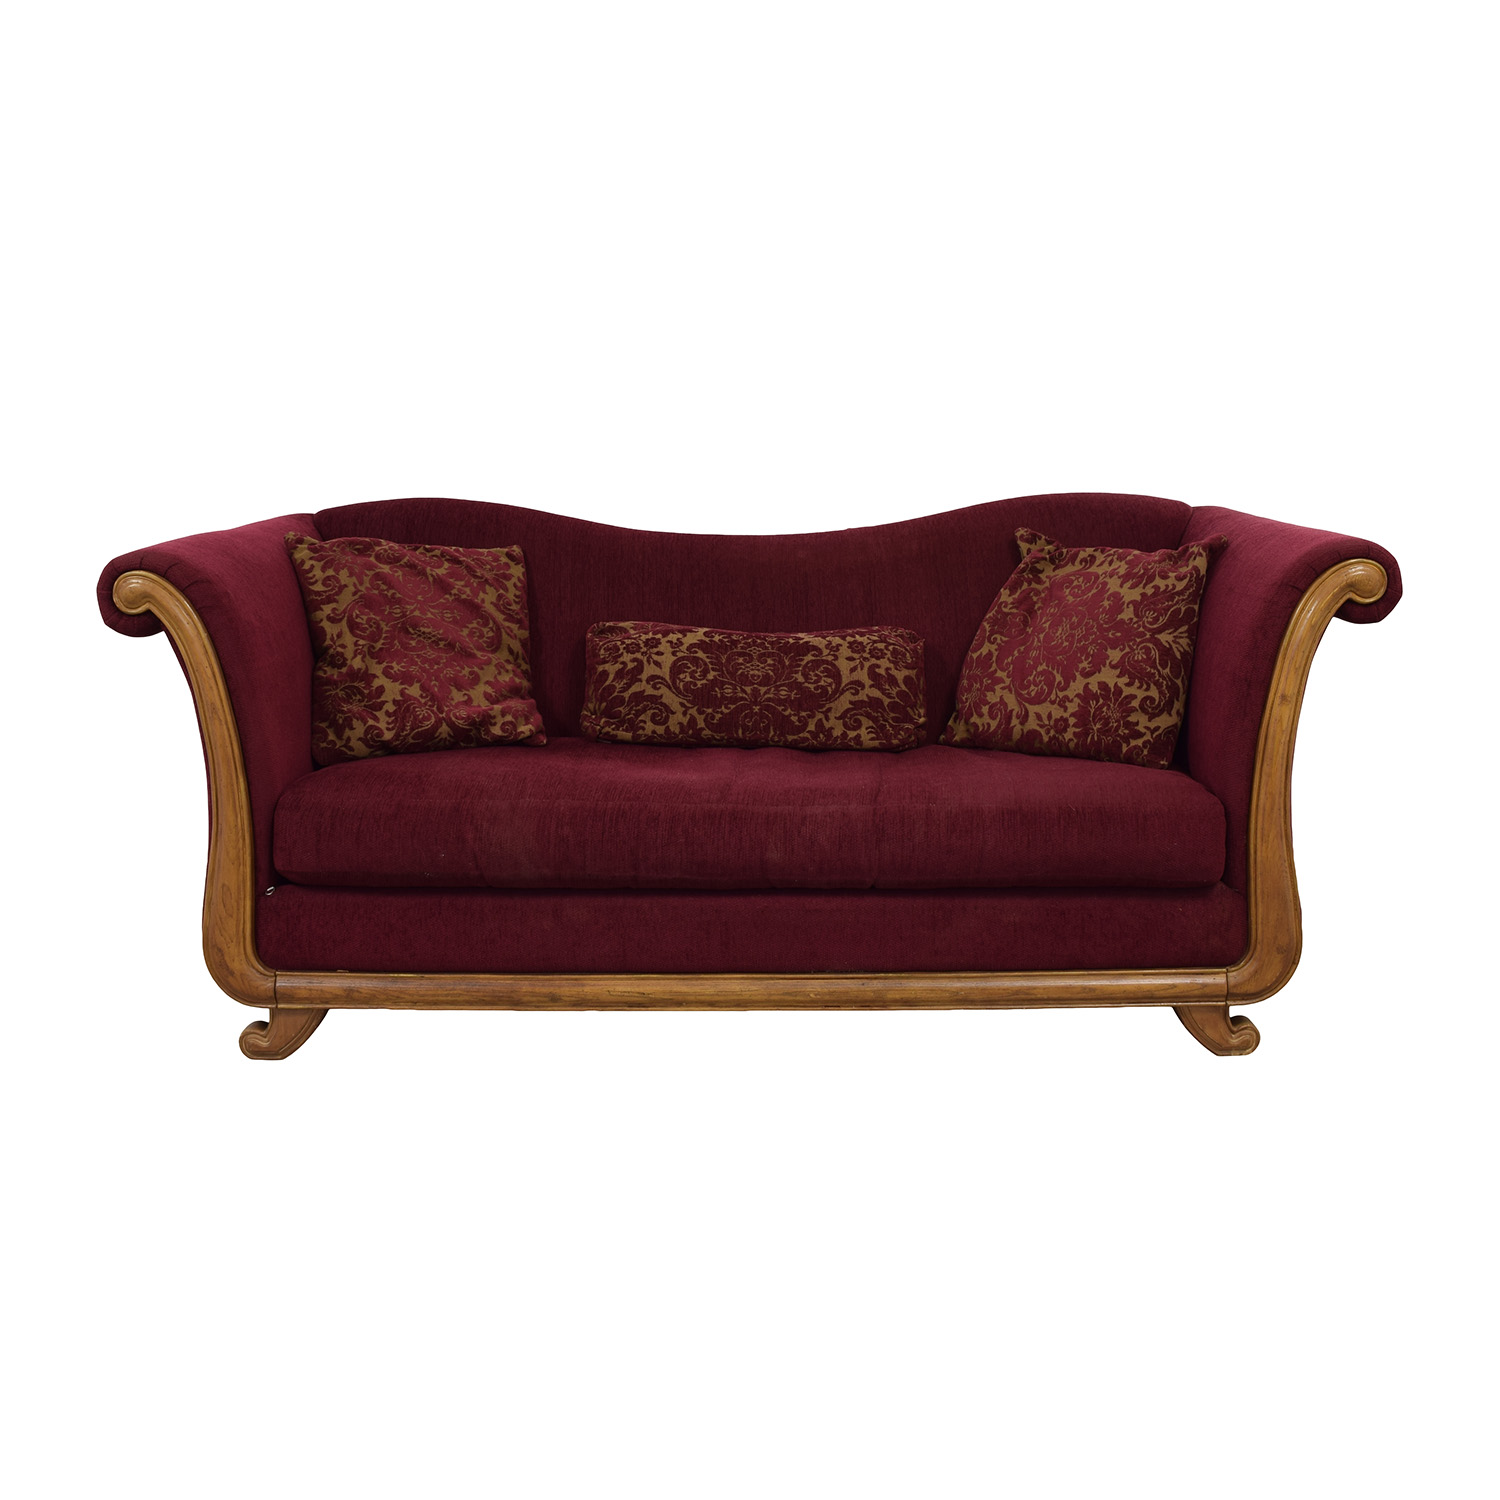 buy Bernhardt Maroon Single-Cushion Camel Back Sofa Bernhardt